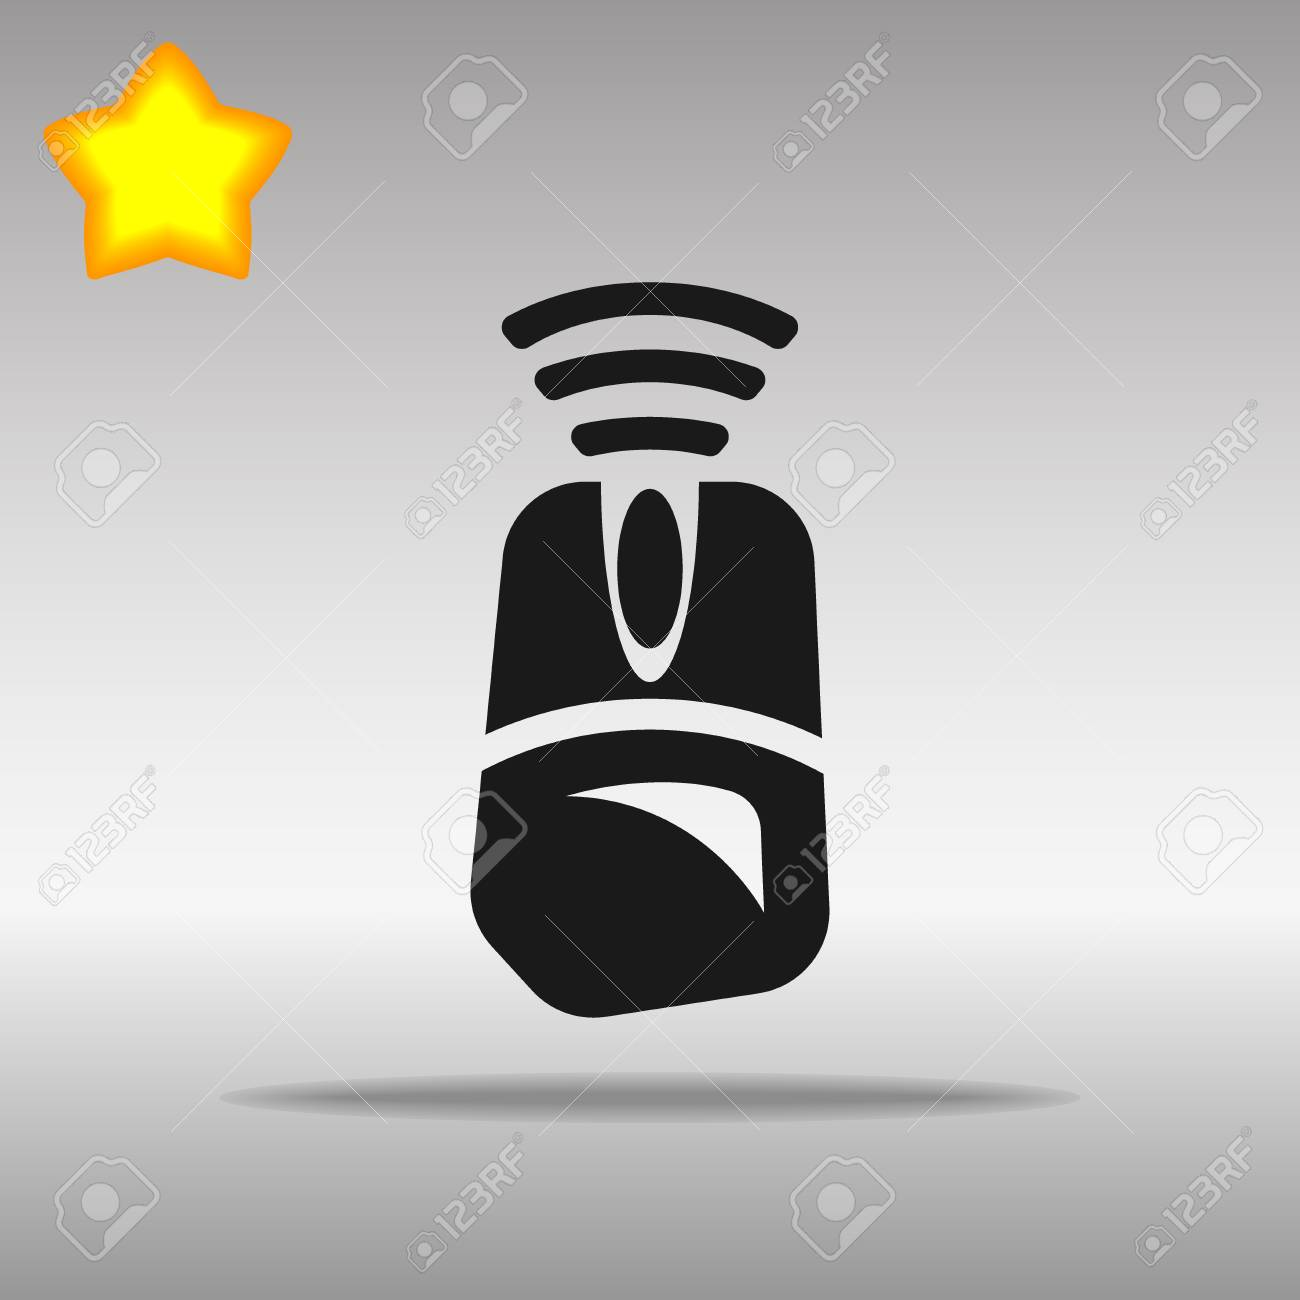 Computer mouse Wi fi black Icon button logo symbol concept high quality on the gray background - 82176375